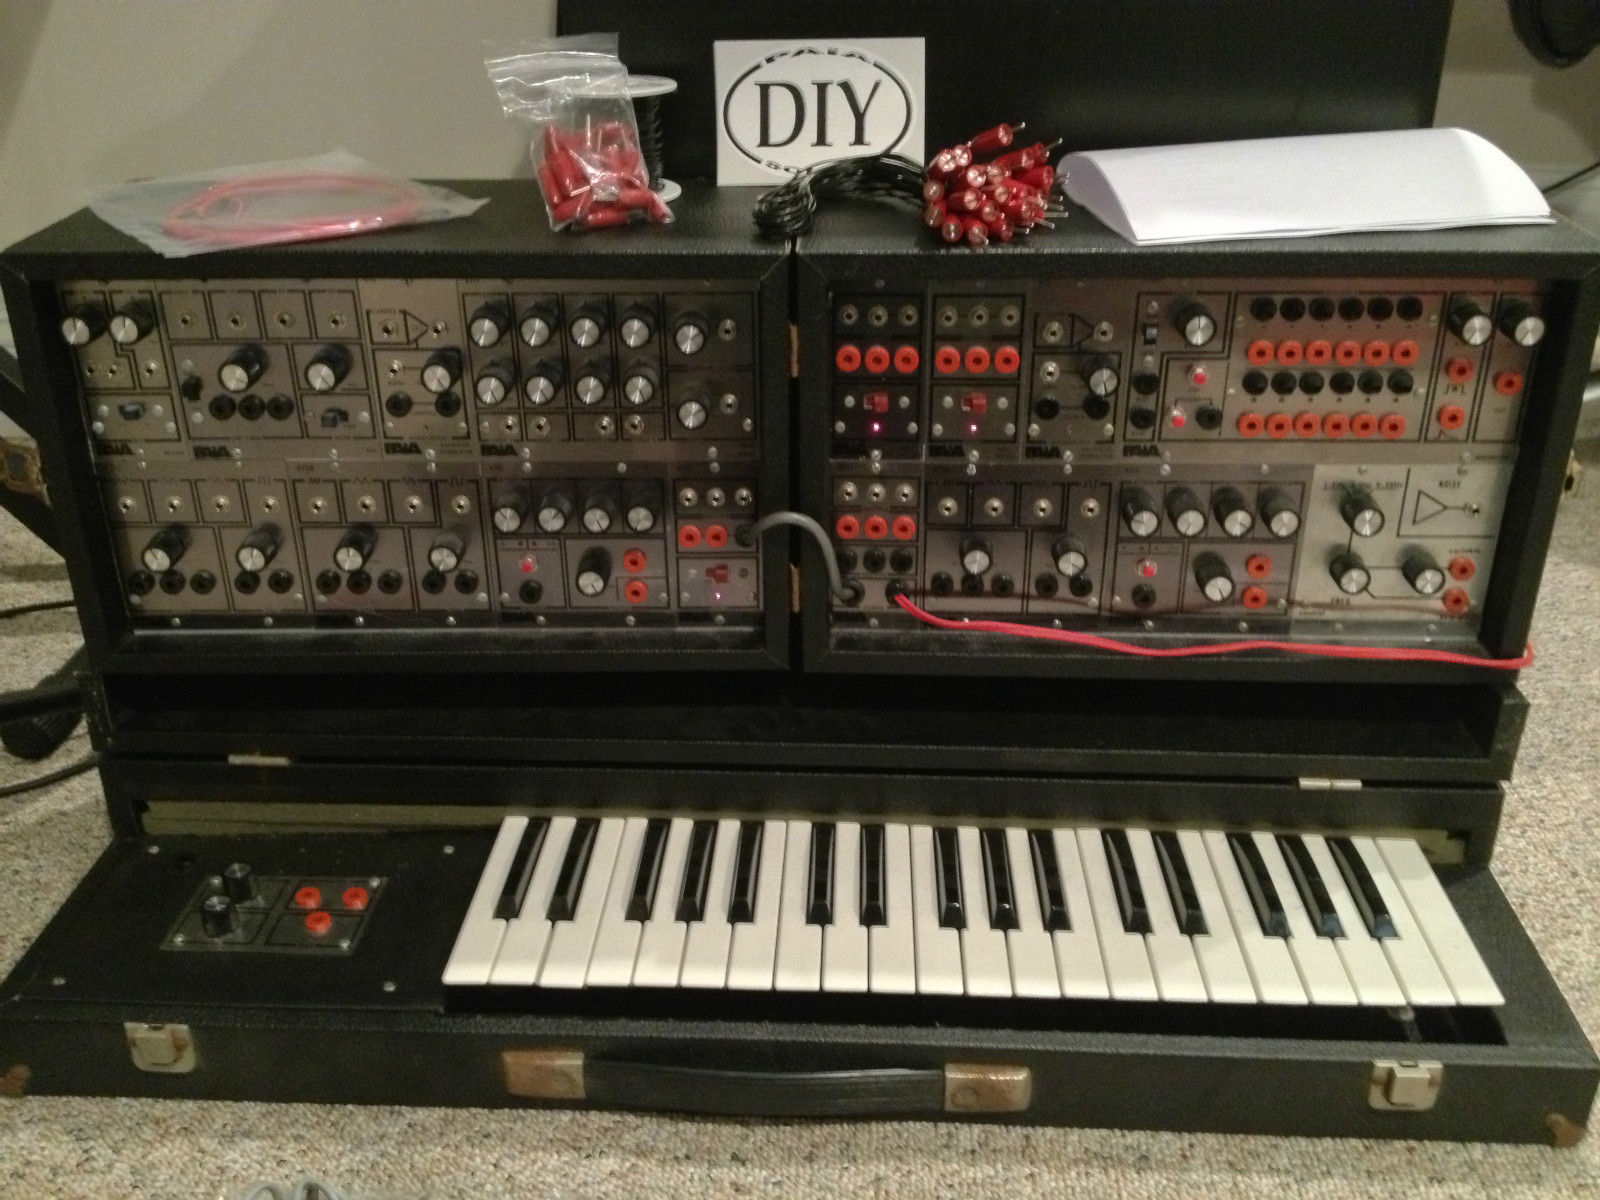 1978 PAIA P4700 J 4700 Vintage Synthesizer with Keyboard I built